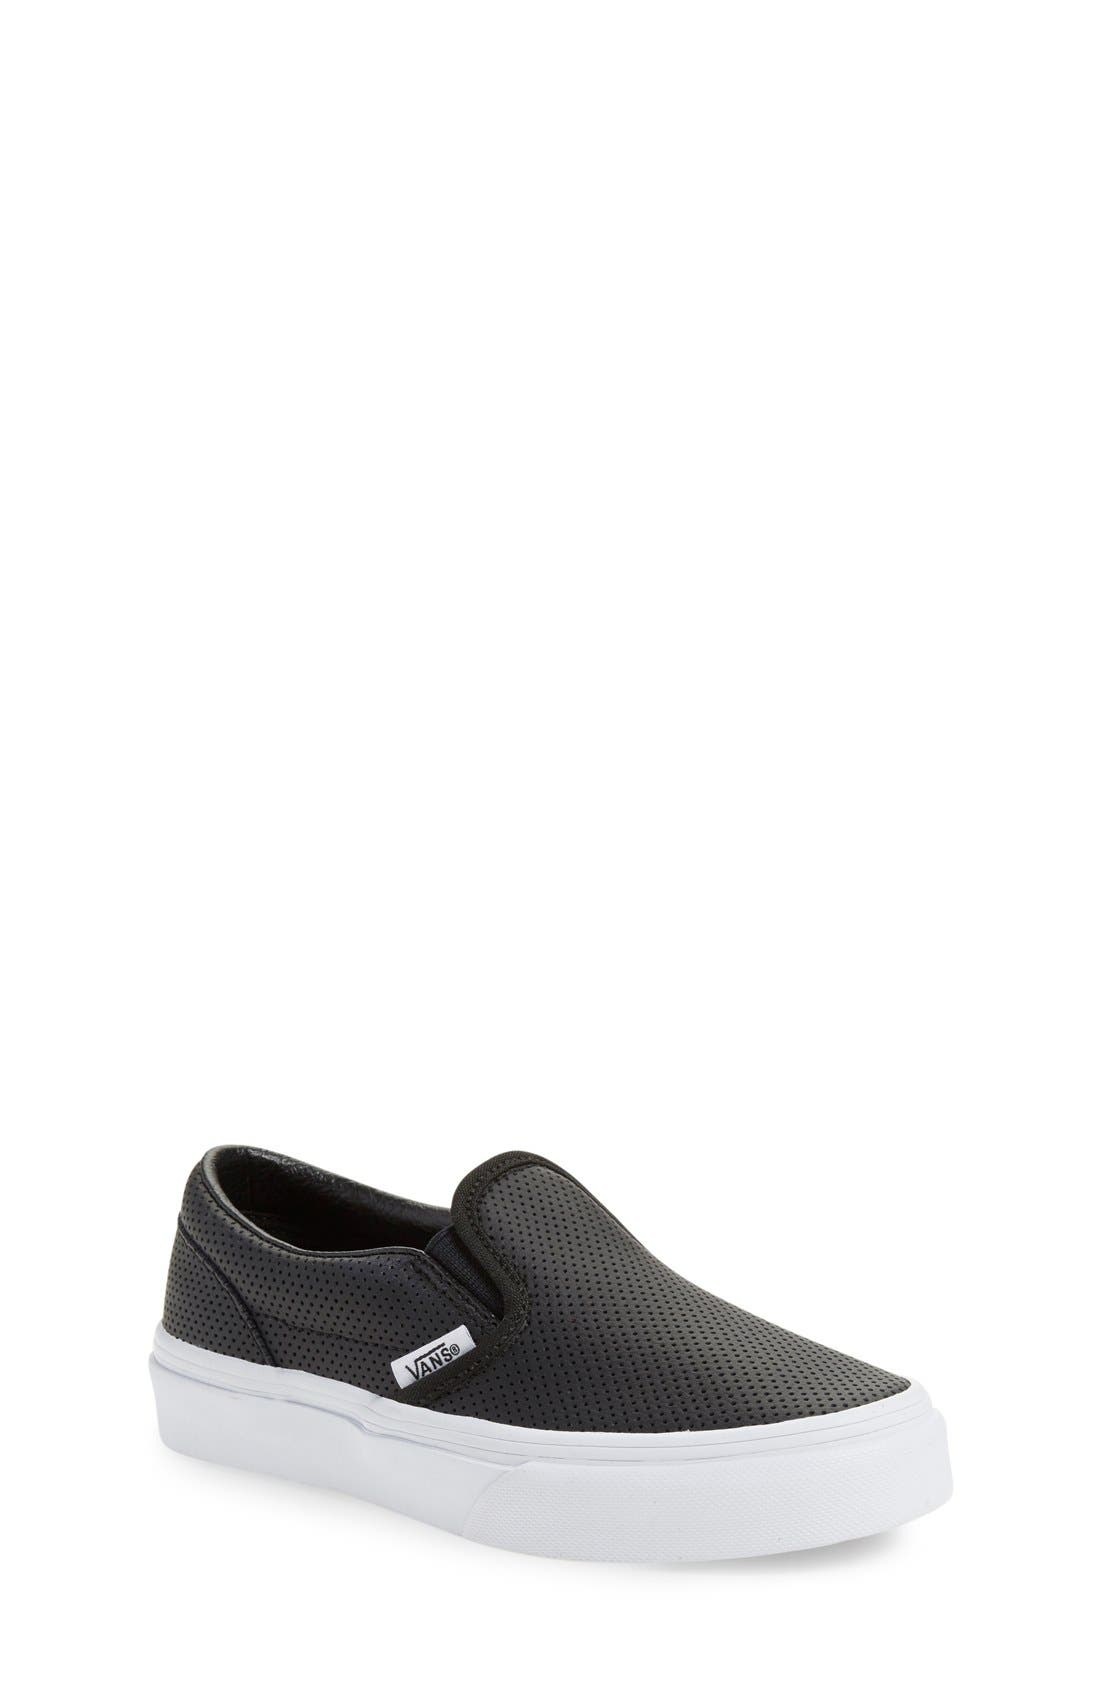 'Classic' Slip-On Sneaker,                             Main thumbnail 1, color,                             BLACK LEATHER